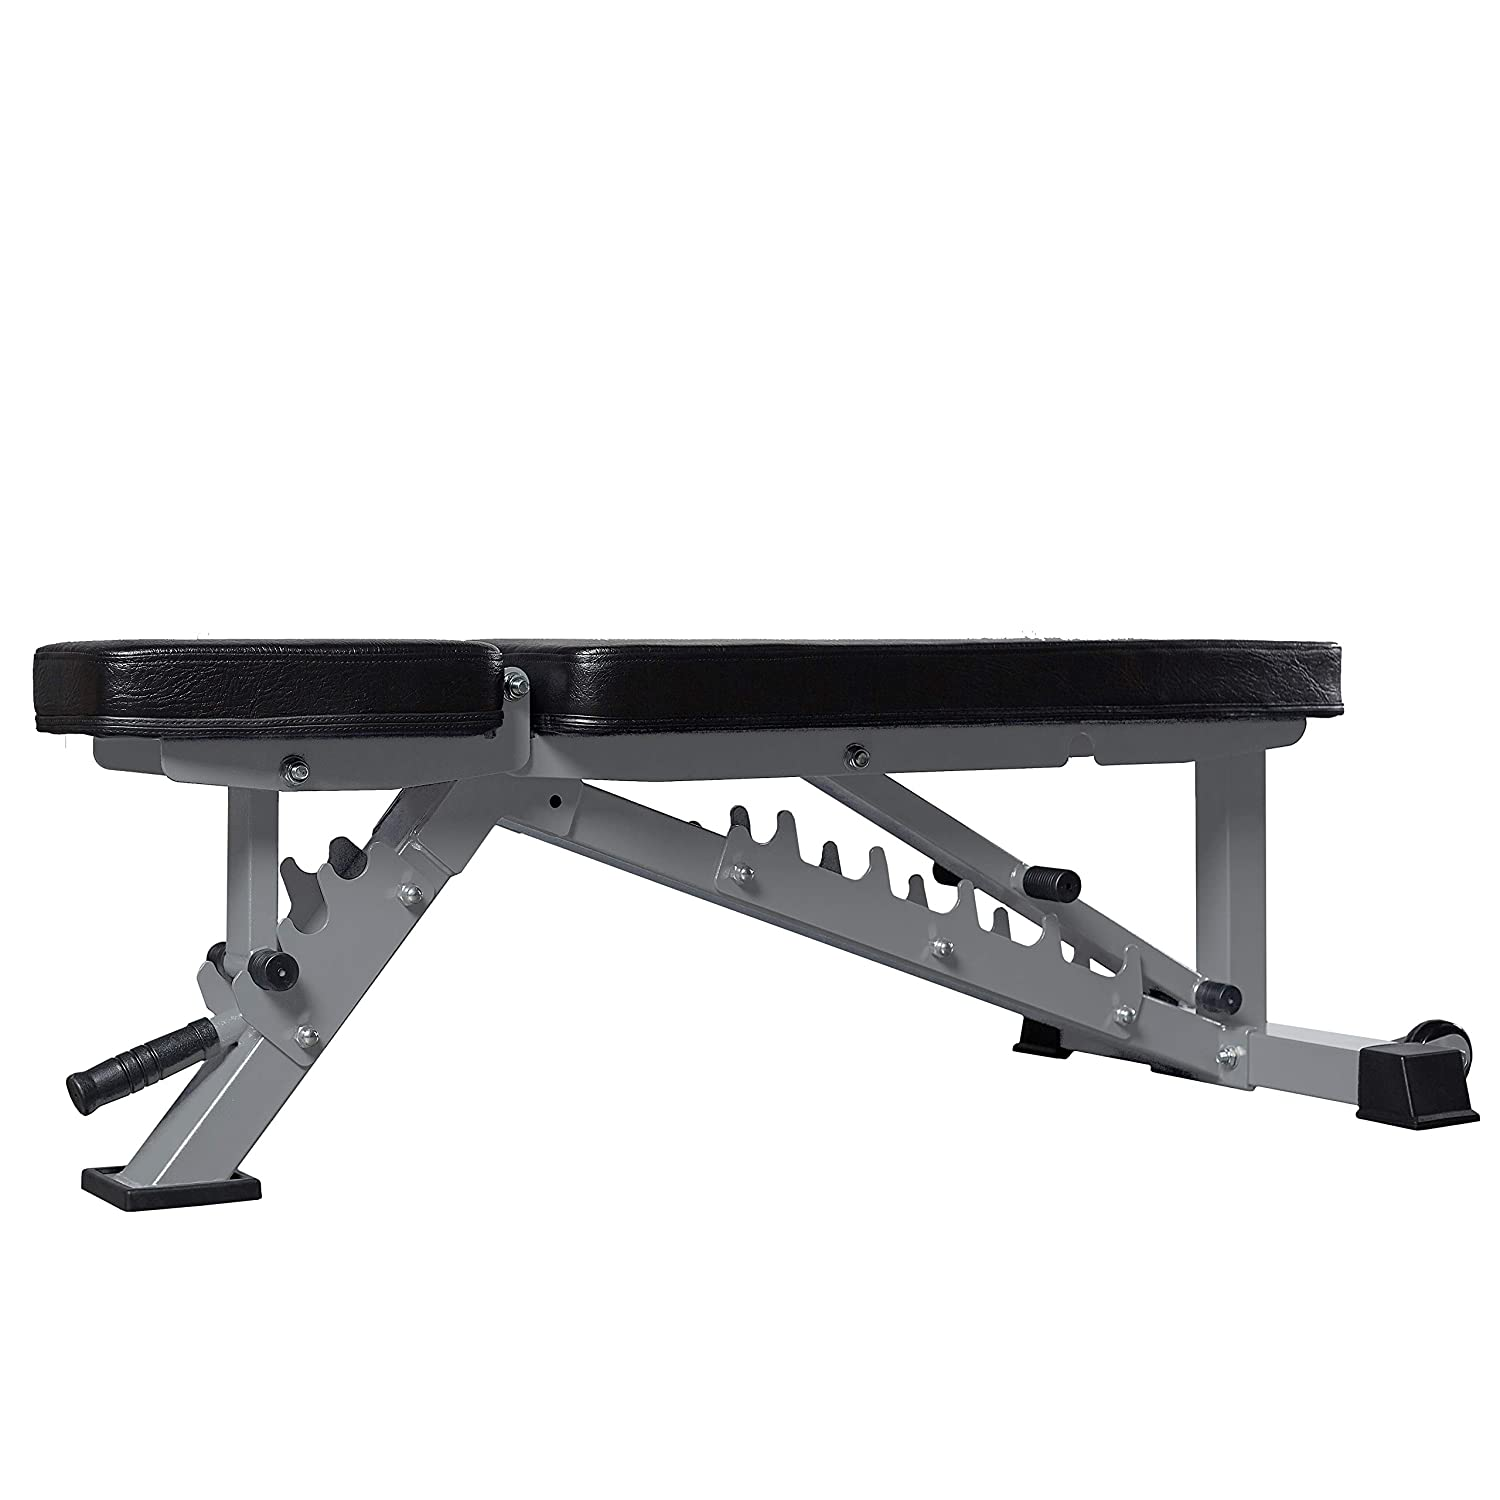 Rep fitness adjustable bench lb rated for home and garage